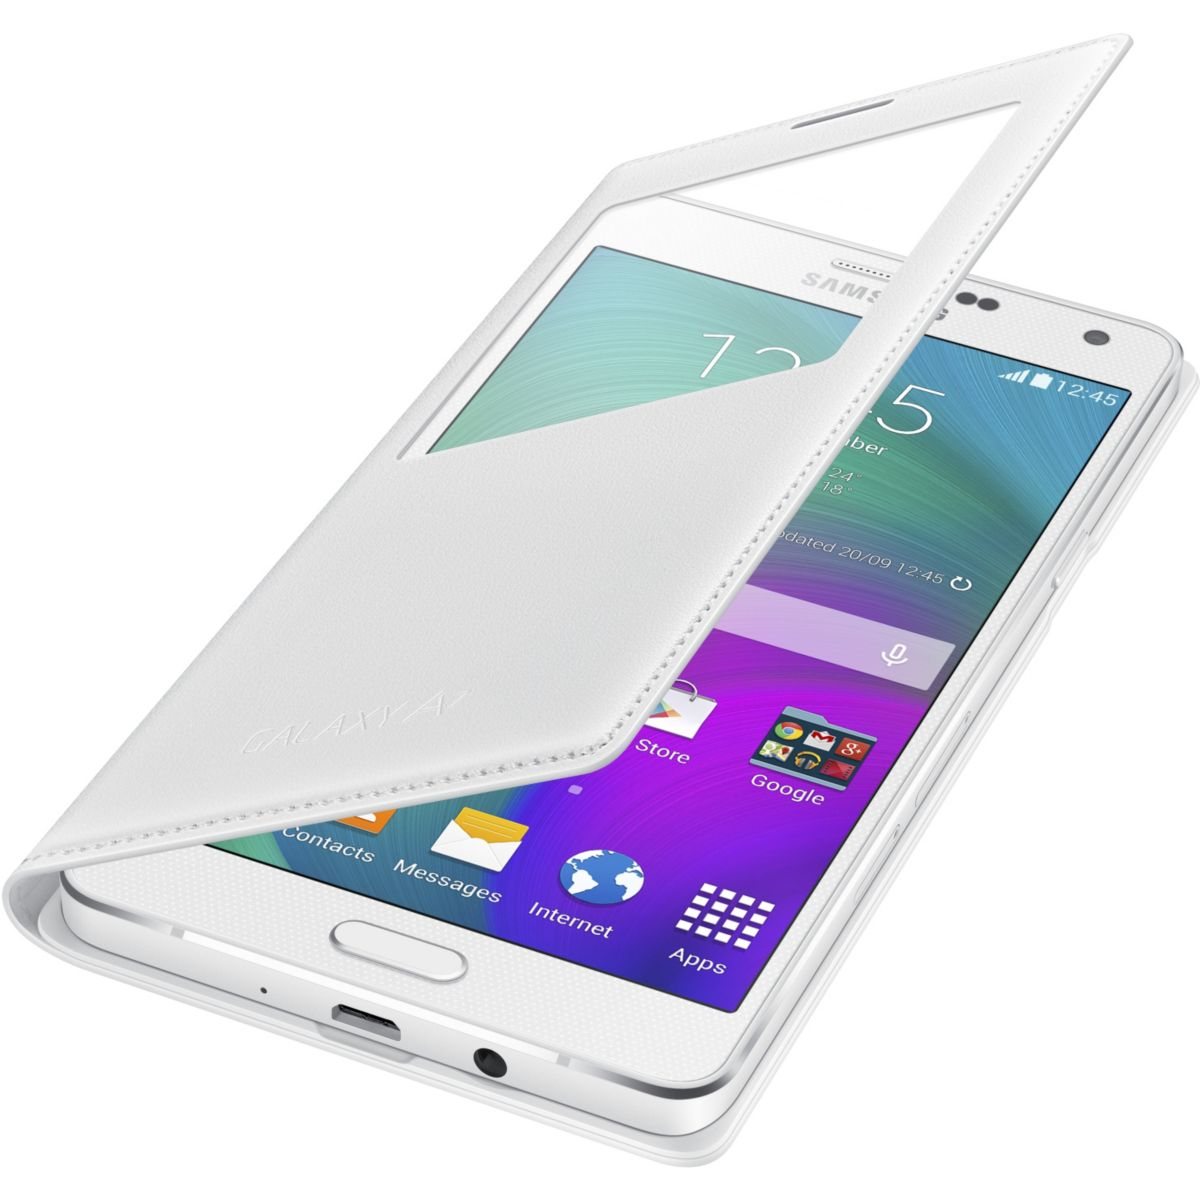 Etui samsung sview cover galaxy a7 blanc - soldes et bons plans